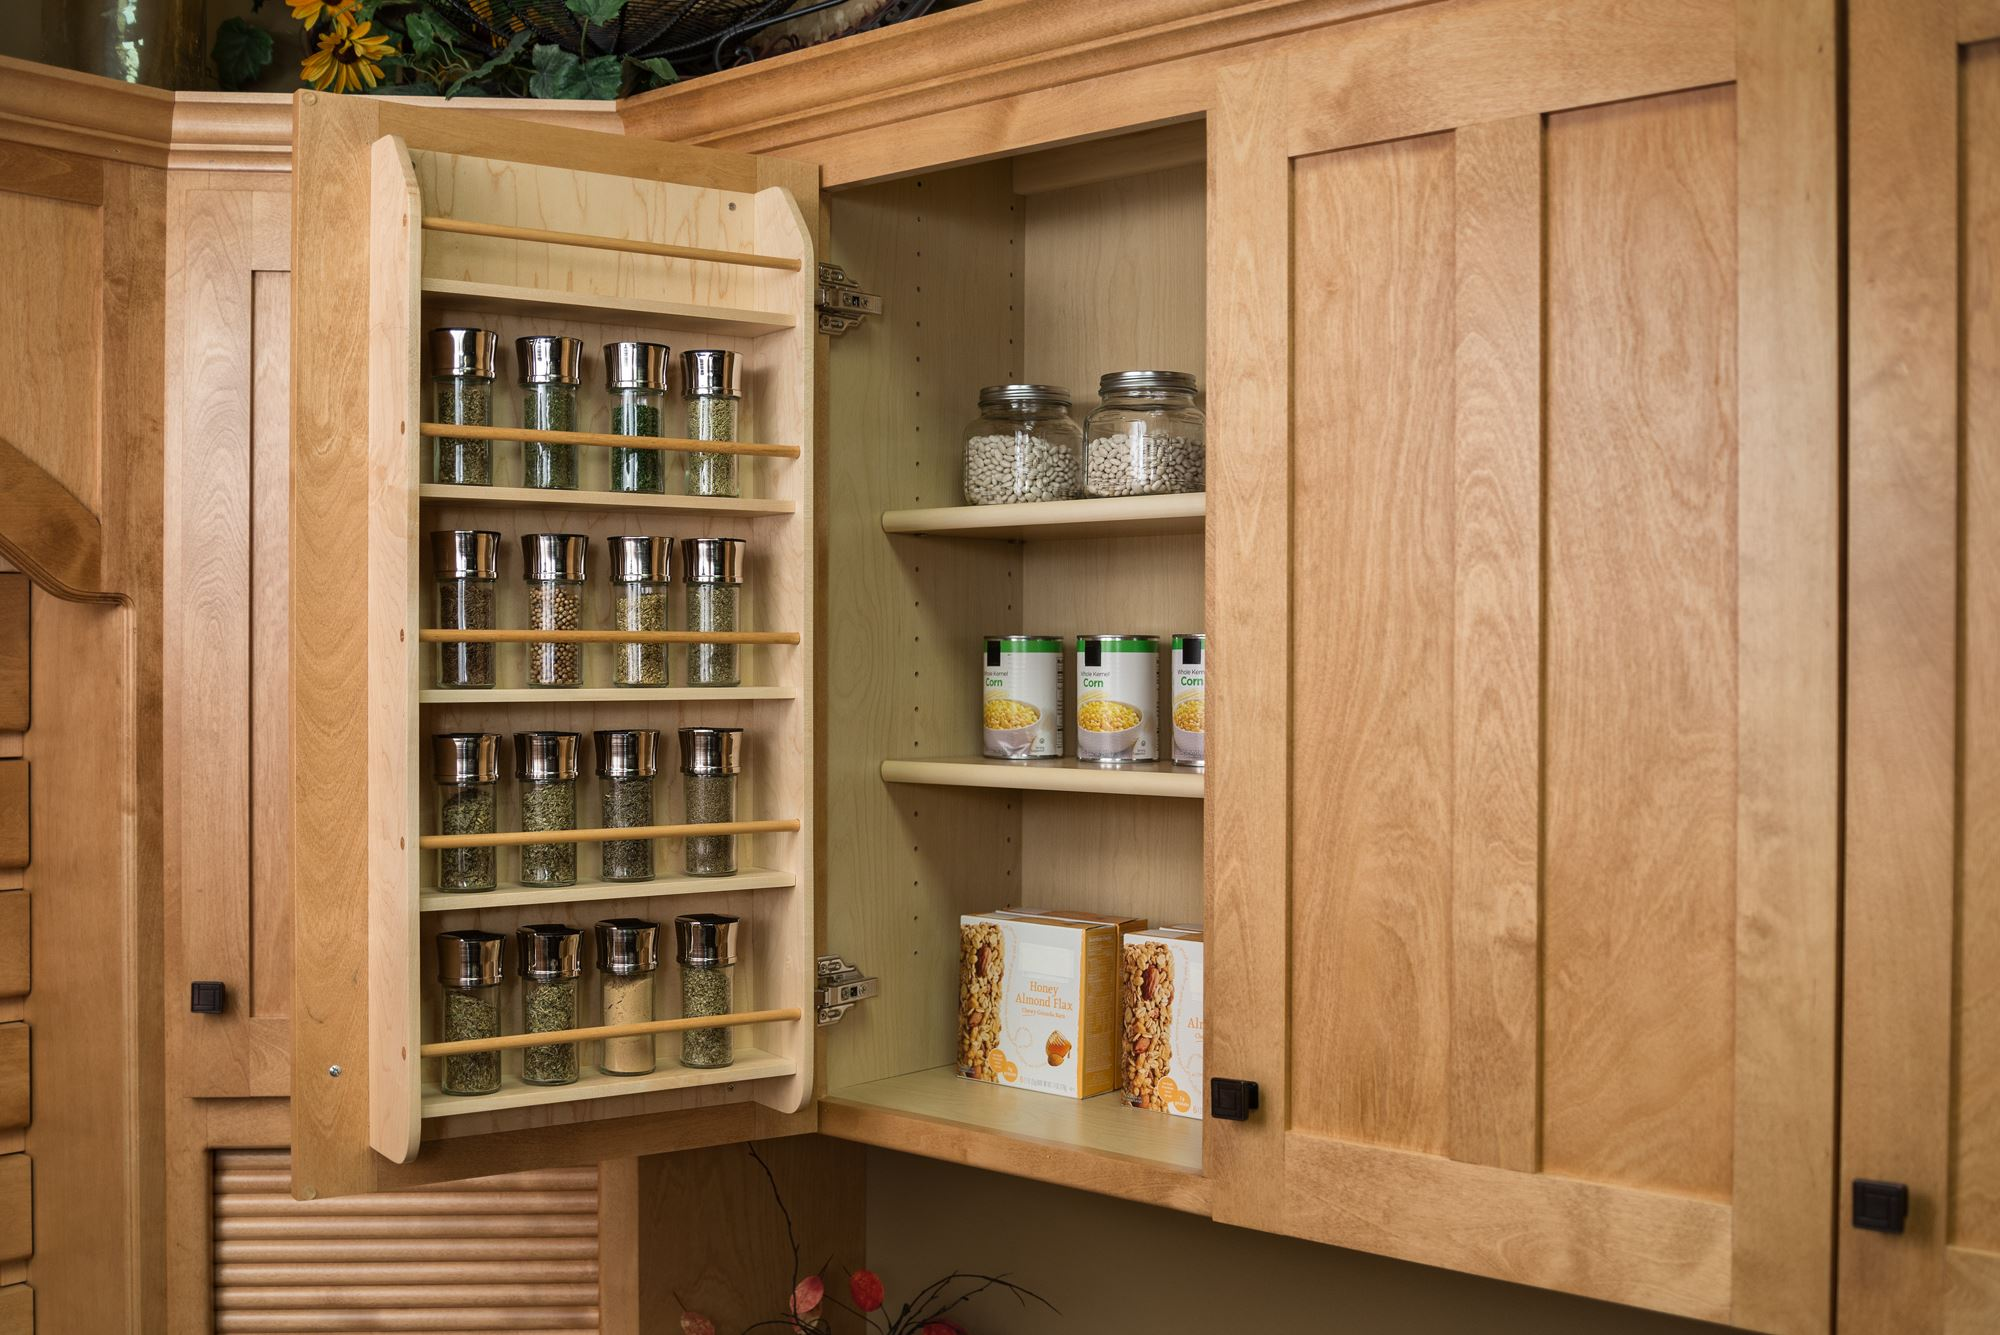 Beautiful Spice Storage Solutions #14 - Door Mounted Spice Rack